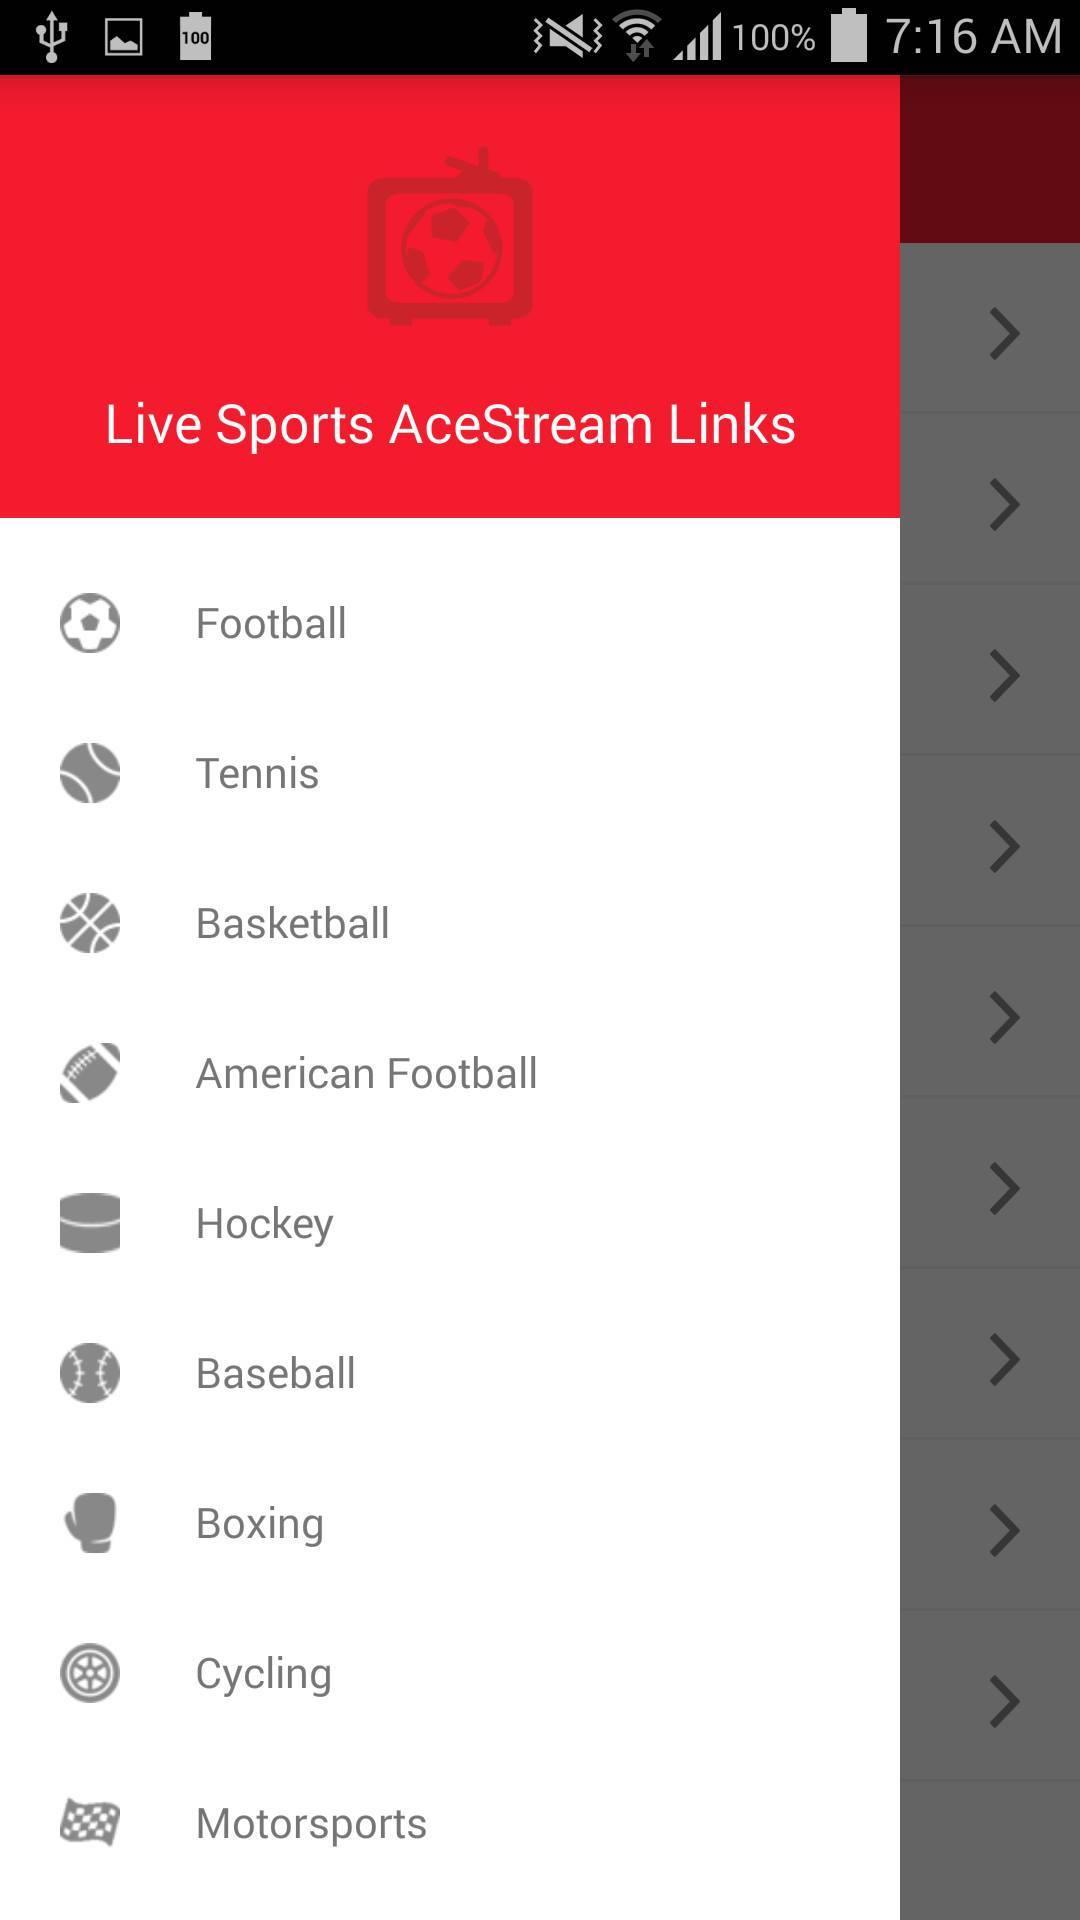 Live Sports AceStream Links for Android - APK Download